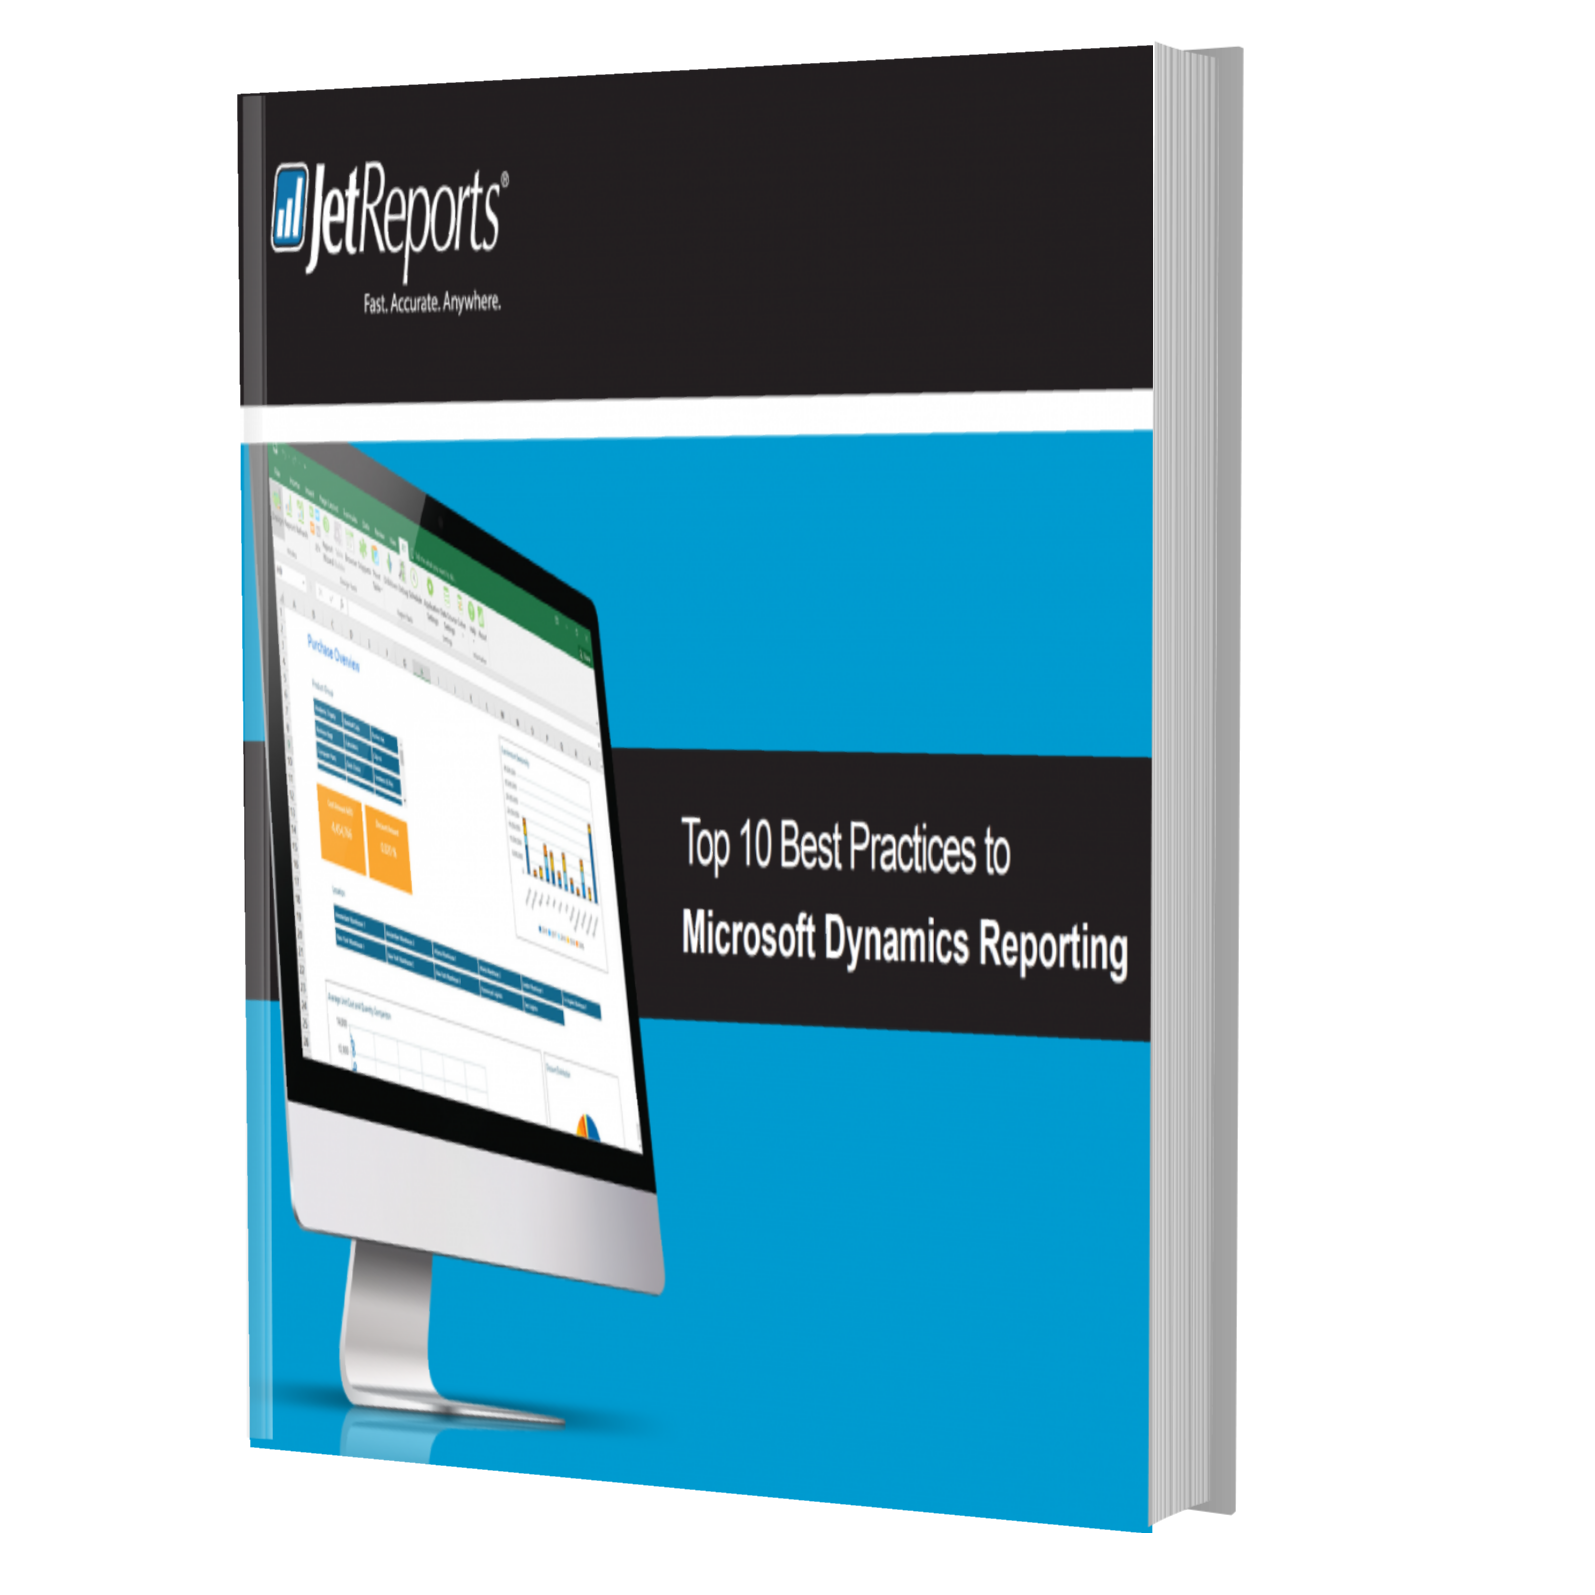 Jet-MOFU-Guide-Top-10-Best-Practices-to-Dynamics-Reporting- ebook